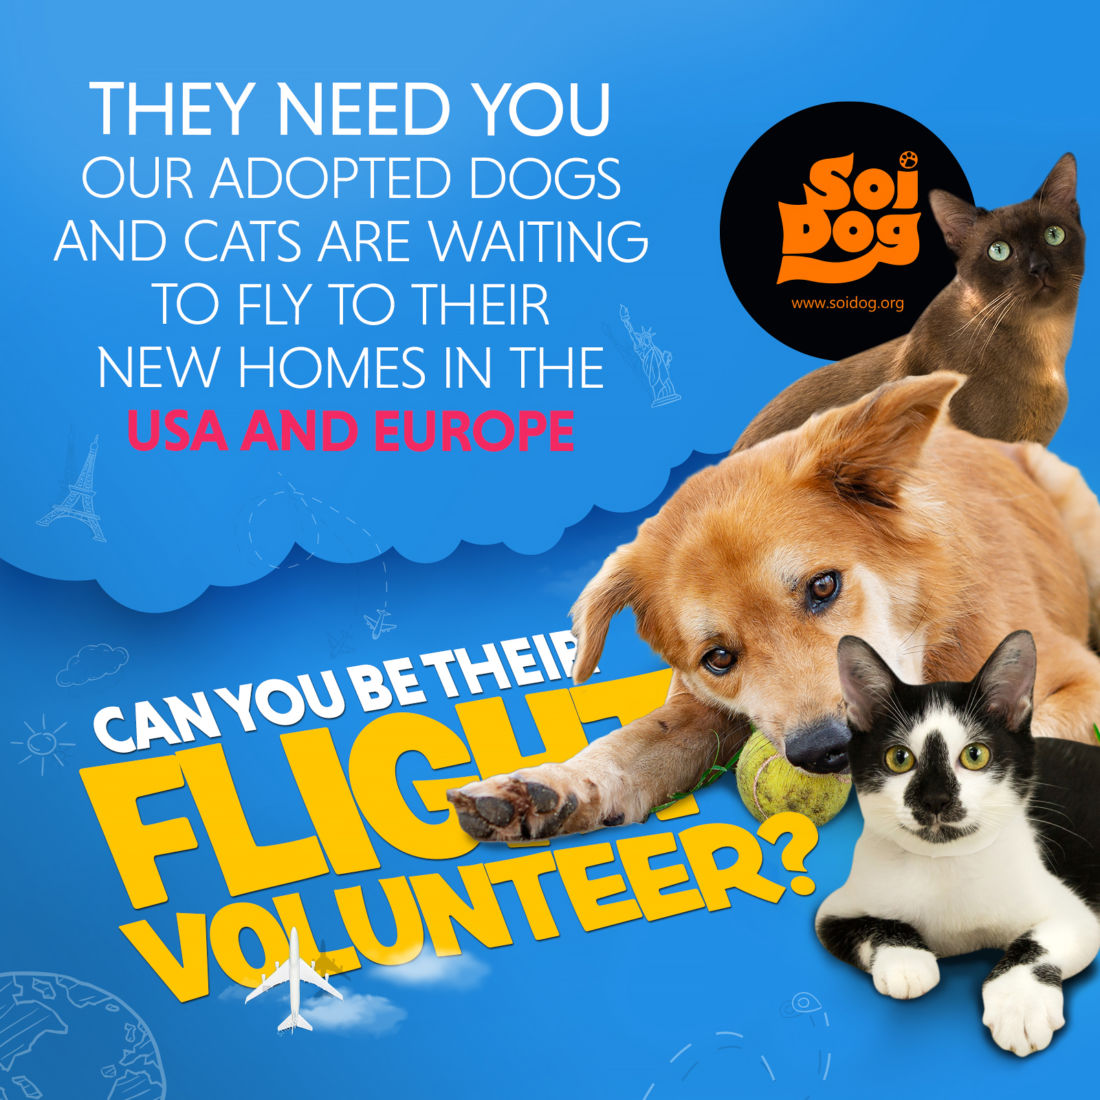 Soi Dog Foundation is looking for flight volunteers | News by Thaiger